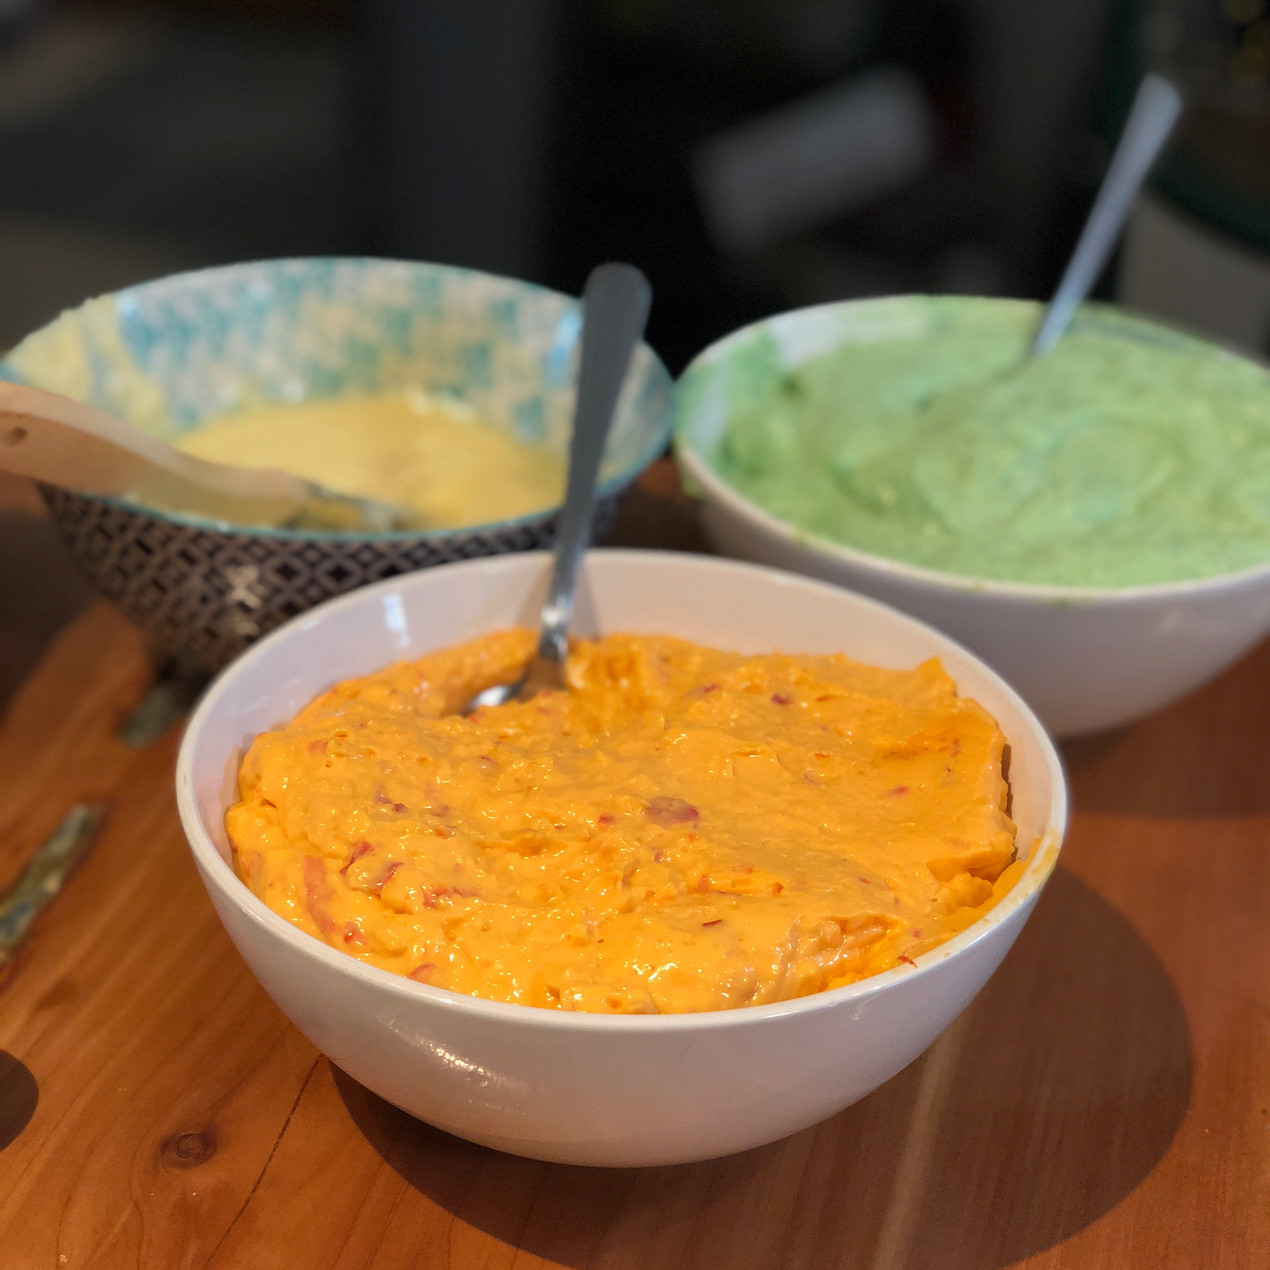 Pimiento cheese, butter, and watercress spread